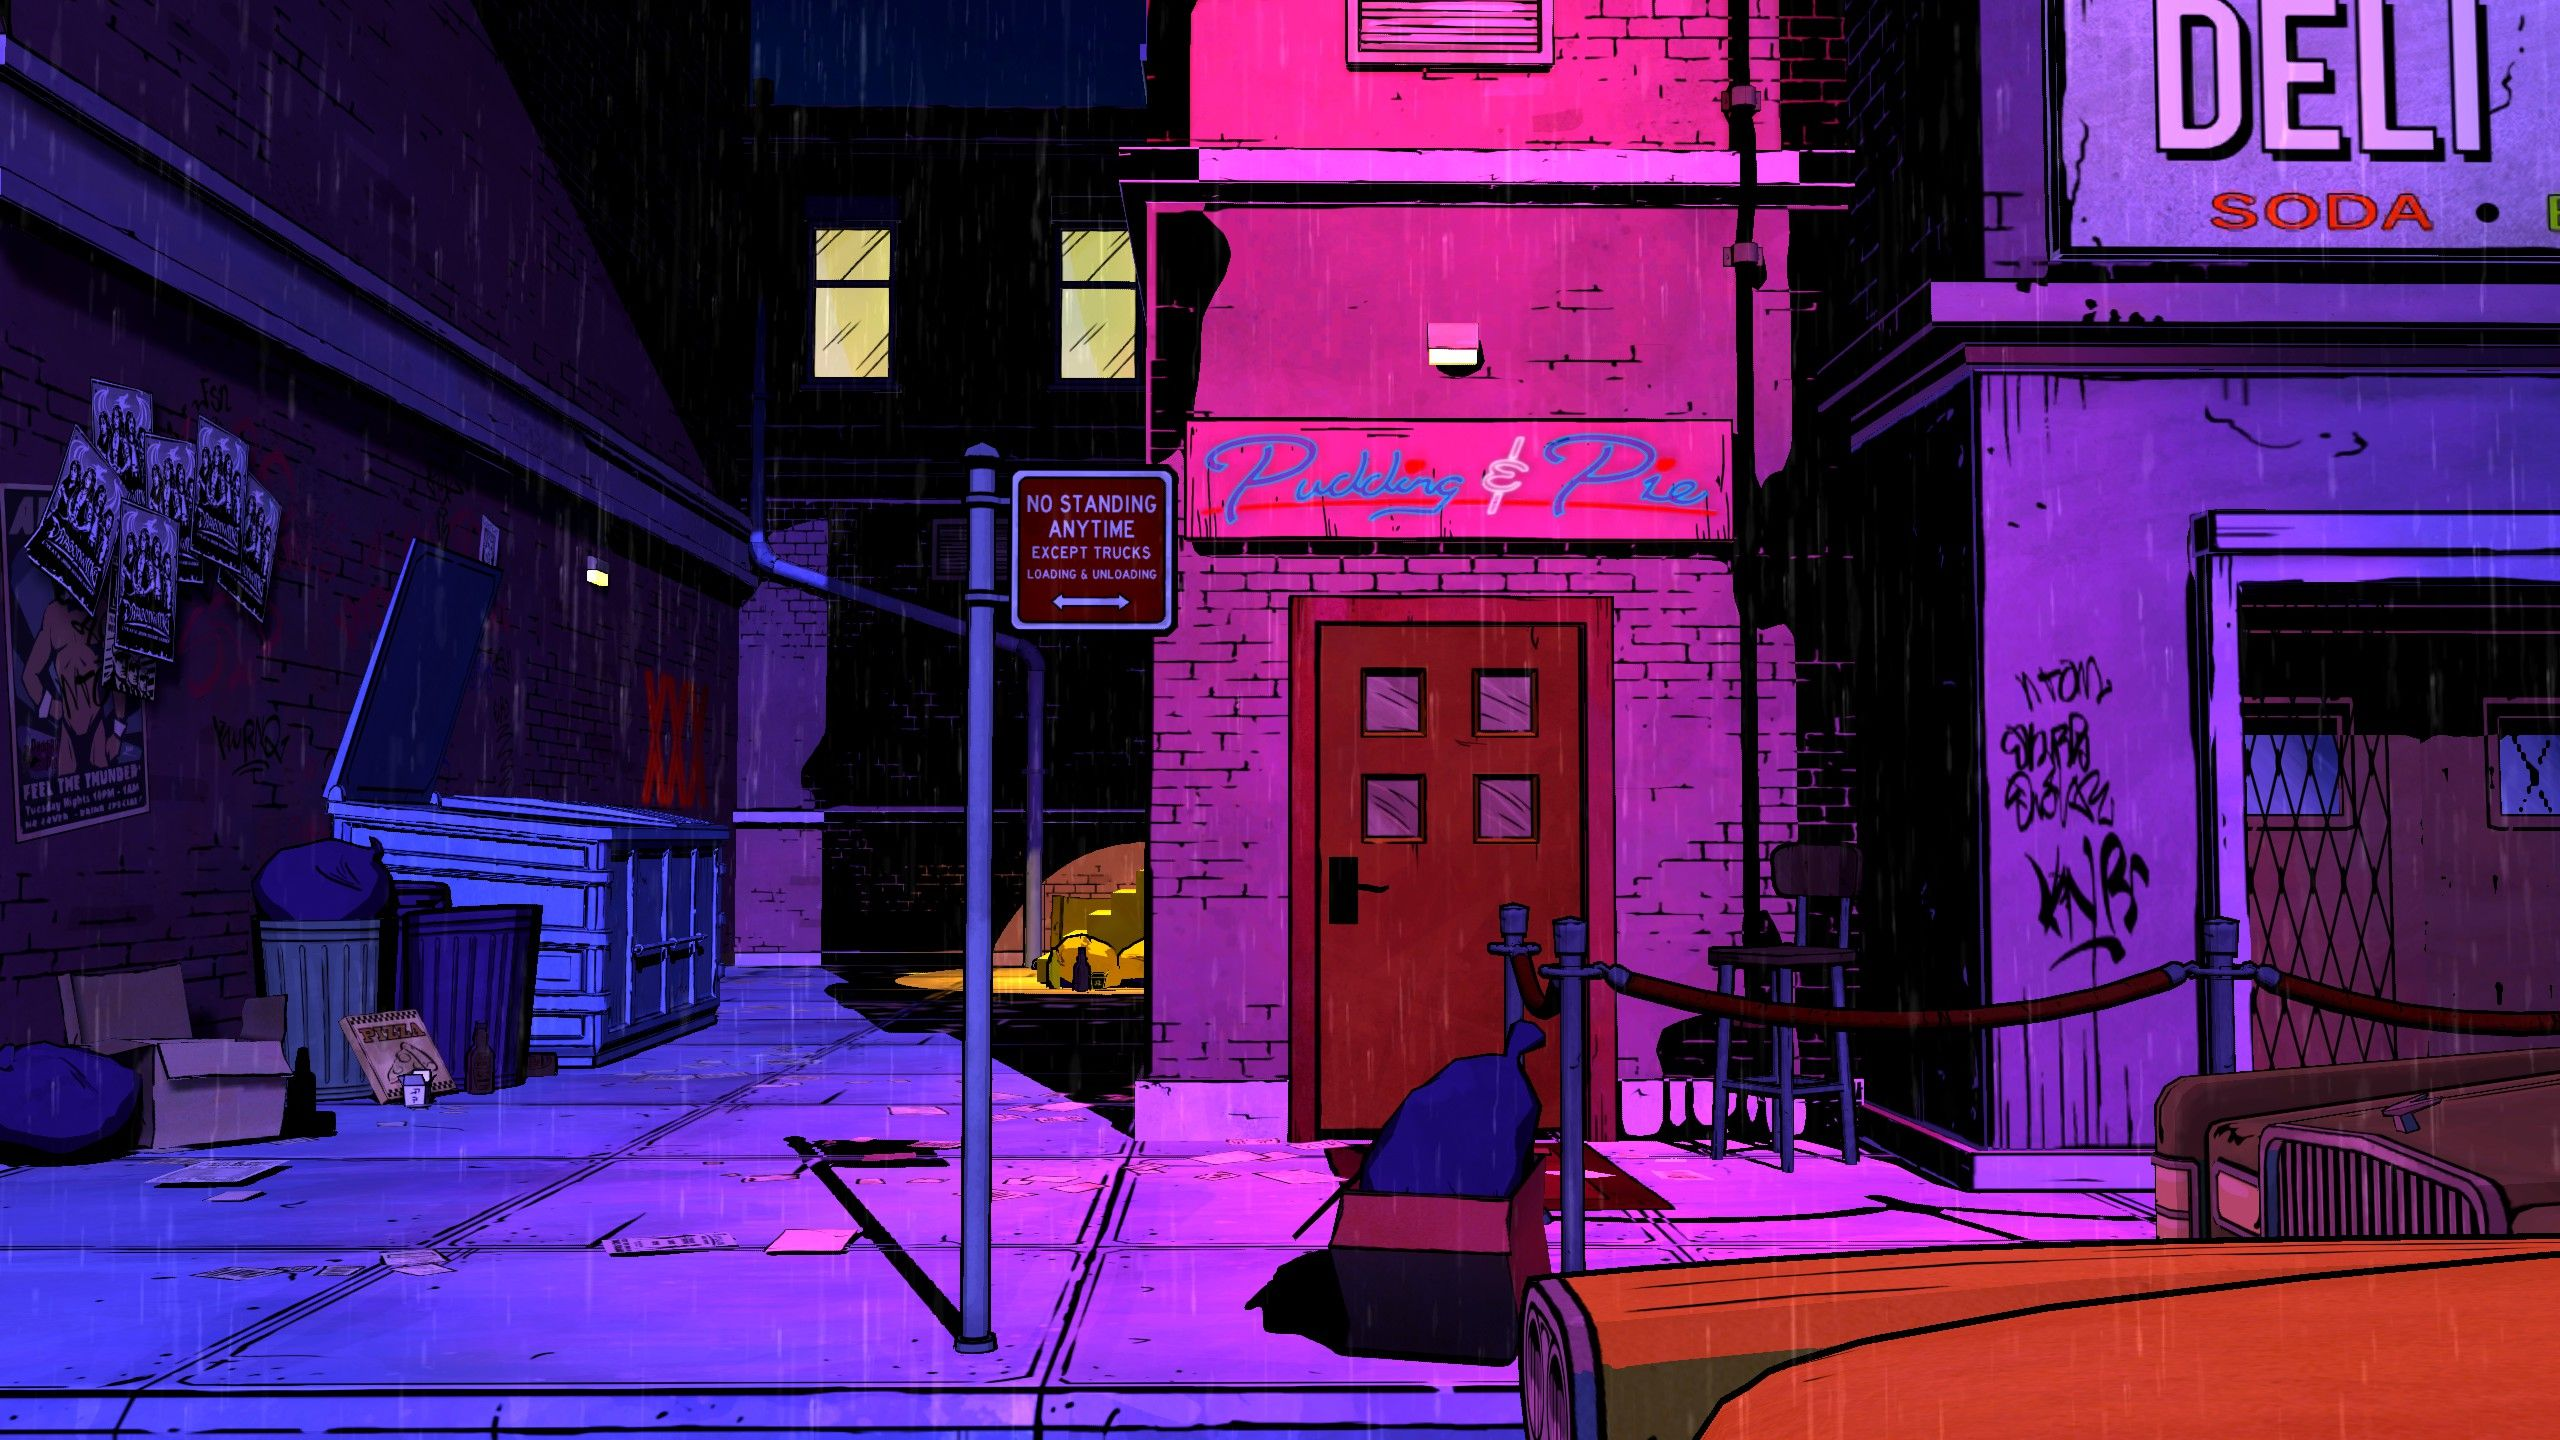 Pin By Katie Wells On My Video Game The Wolf Among Us Fantasy Landscape Street Scenes